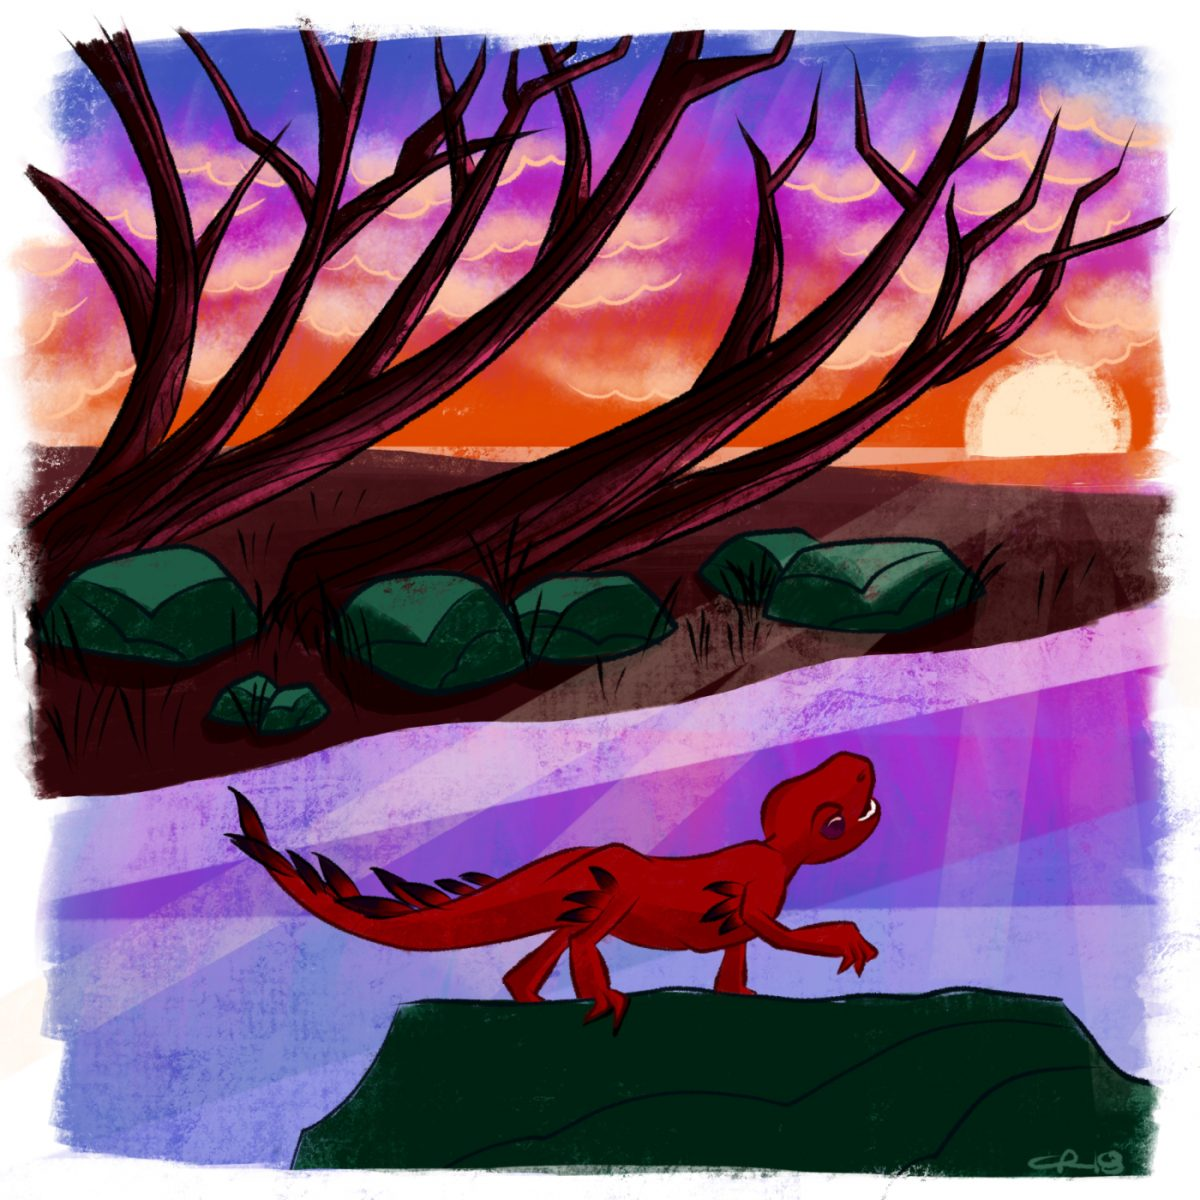 A little dragon stops to enjoy a late autumn sunset